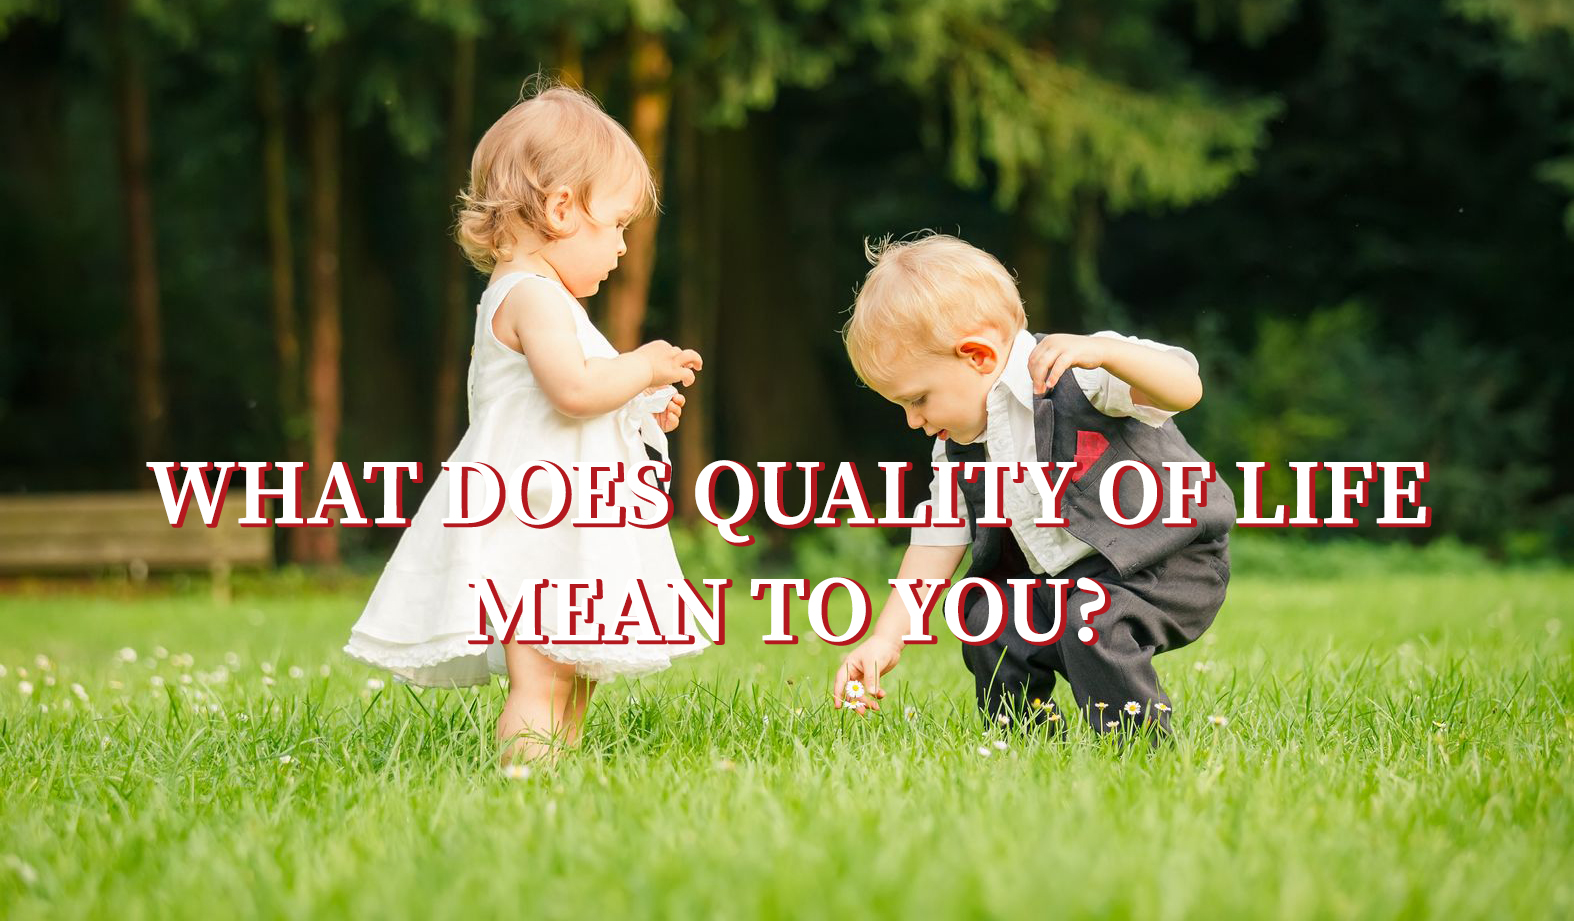 quality of life Looking for online definition of quality of life in the medical dictionary quality of  life explanation free what is quality of life meaning of quality of life medical.